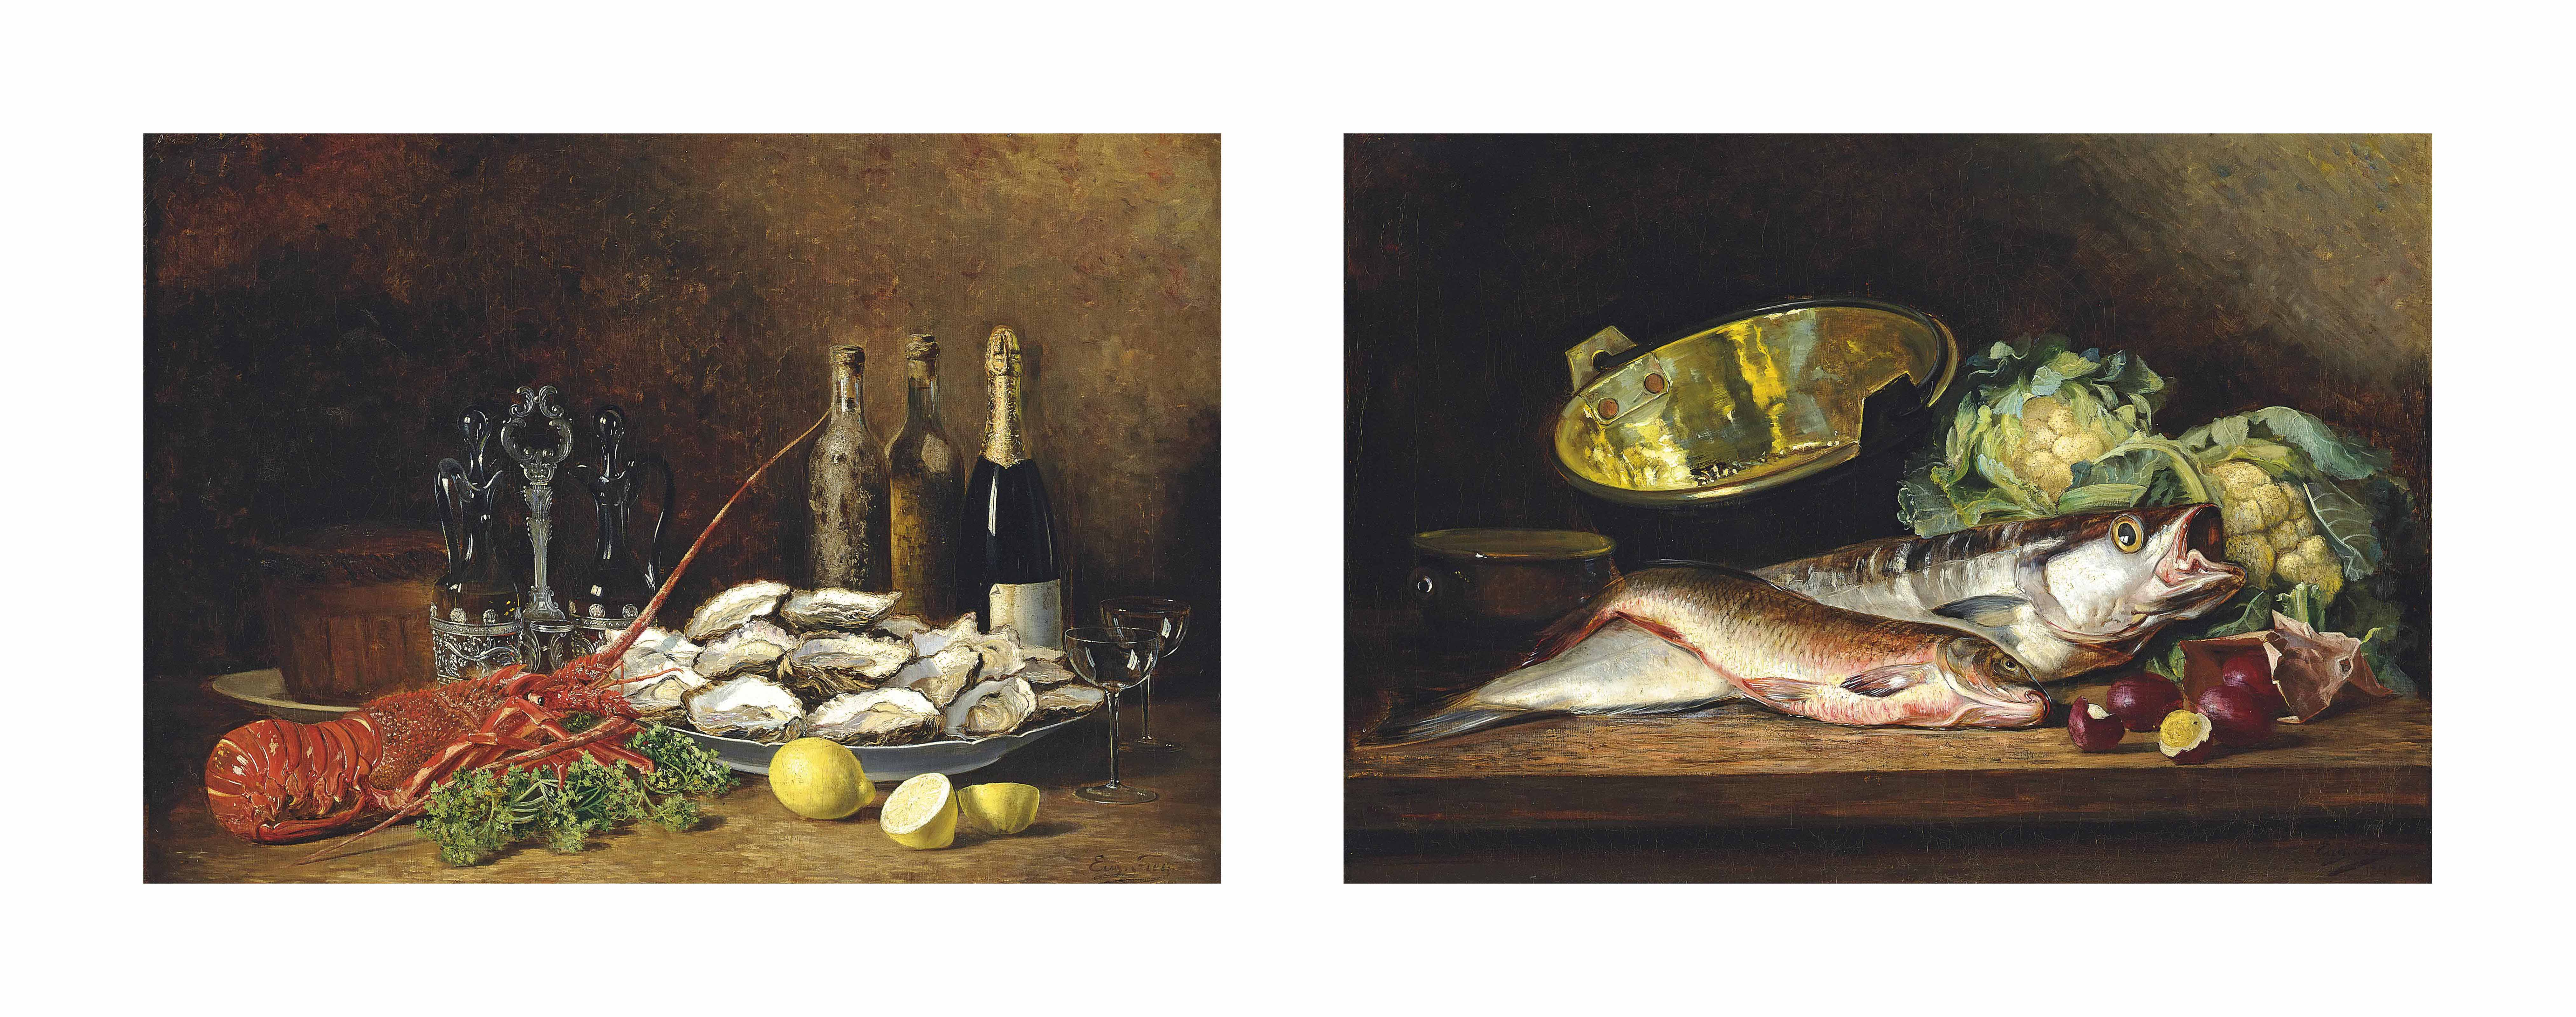 Lobster with champagne and oysters on a ledge; and Fish with cabbages on a ledge